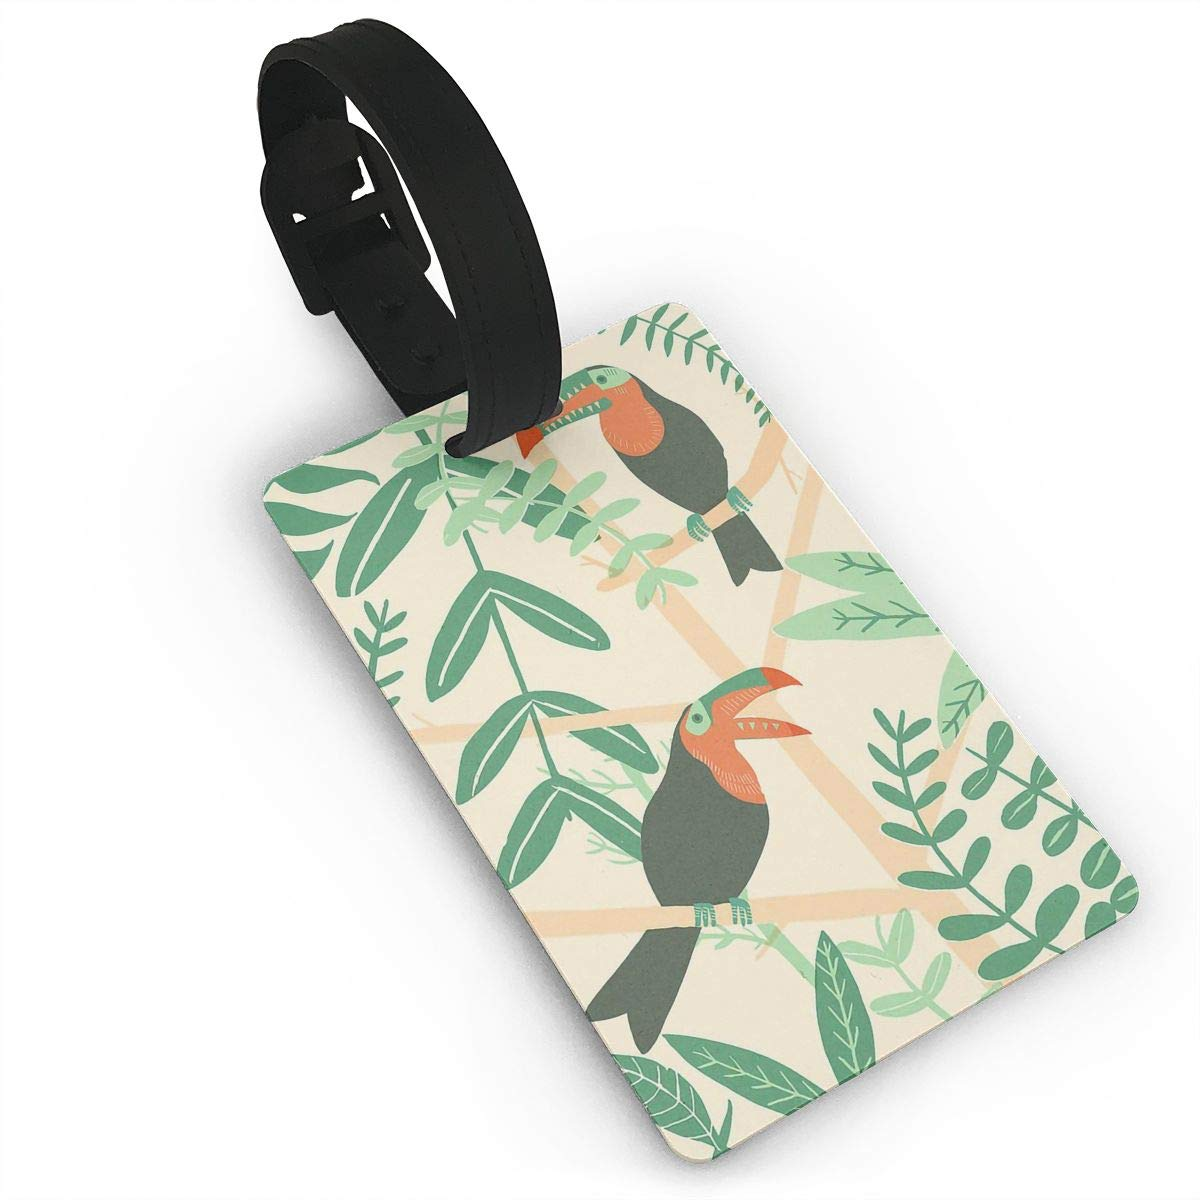 Toucans Handbag Tag For Travel Bag Suitcase Accessories 2 Pack Luggage Tags